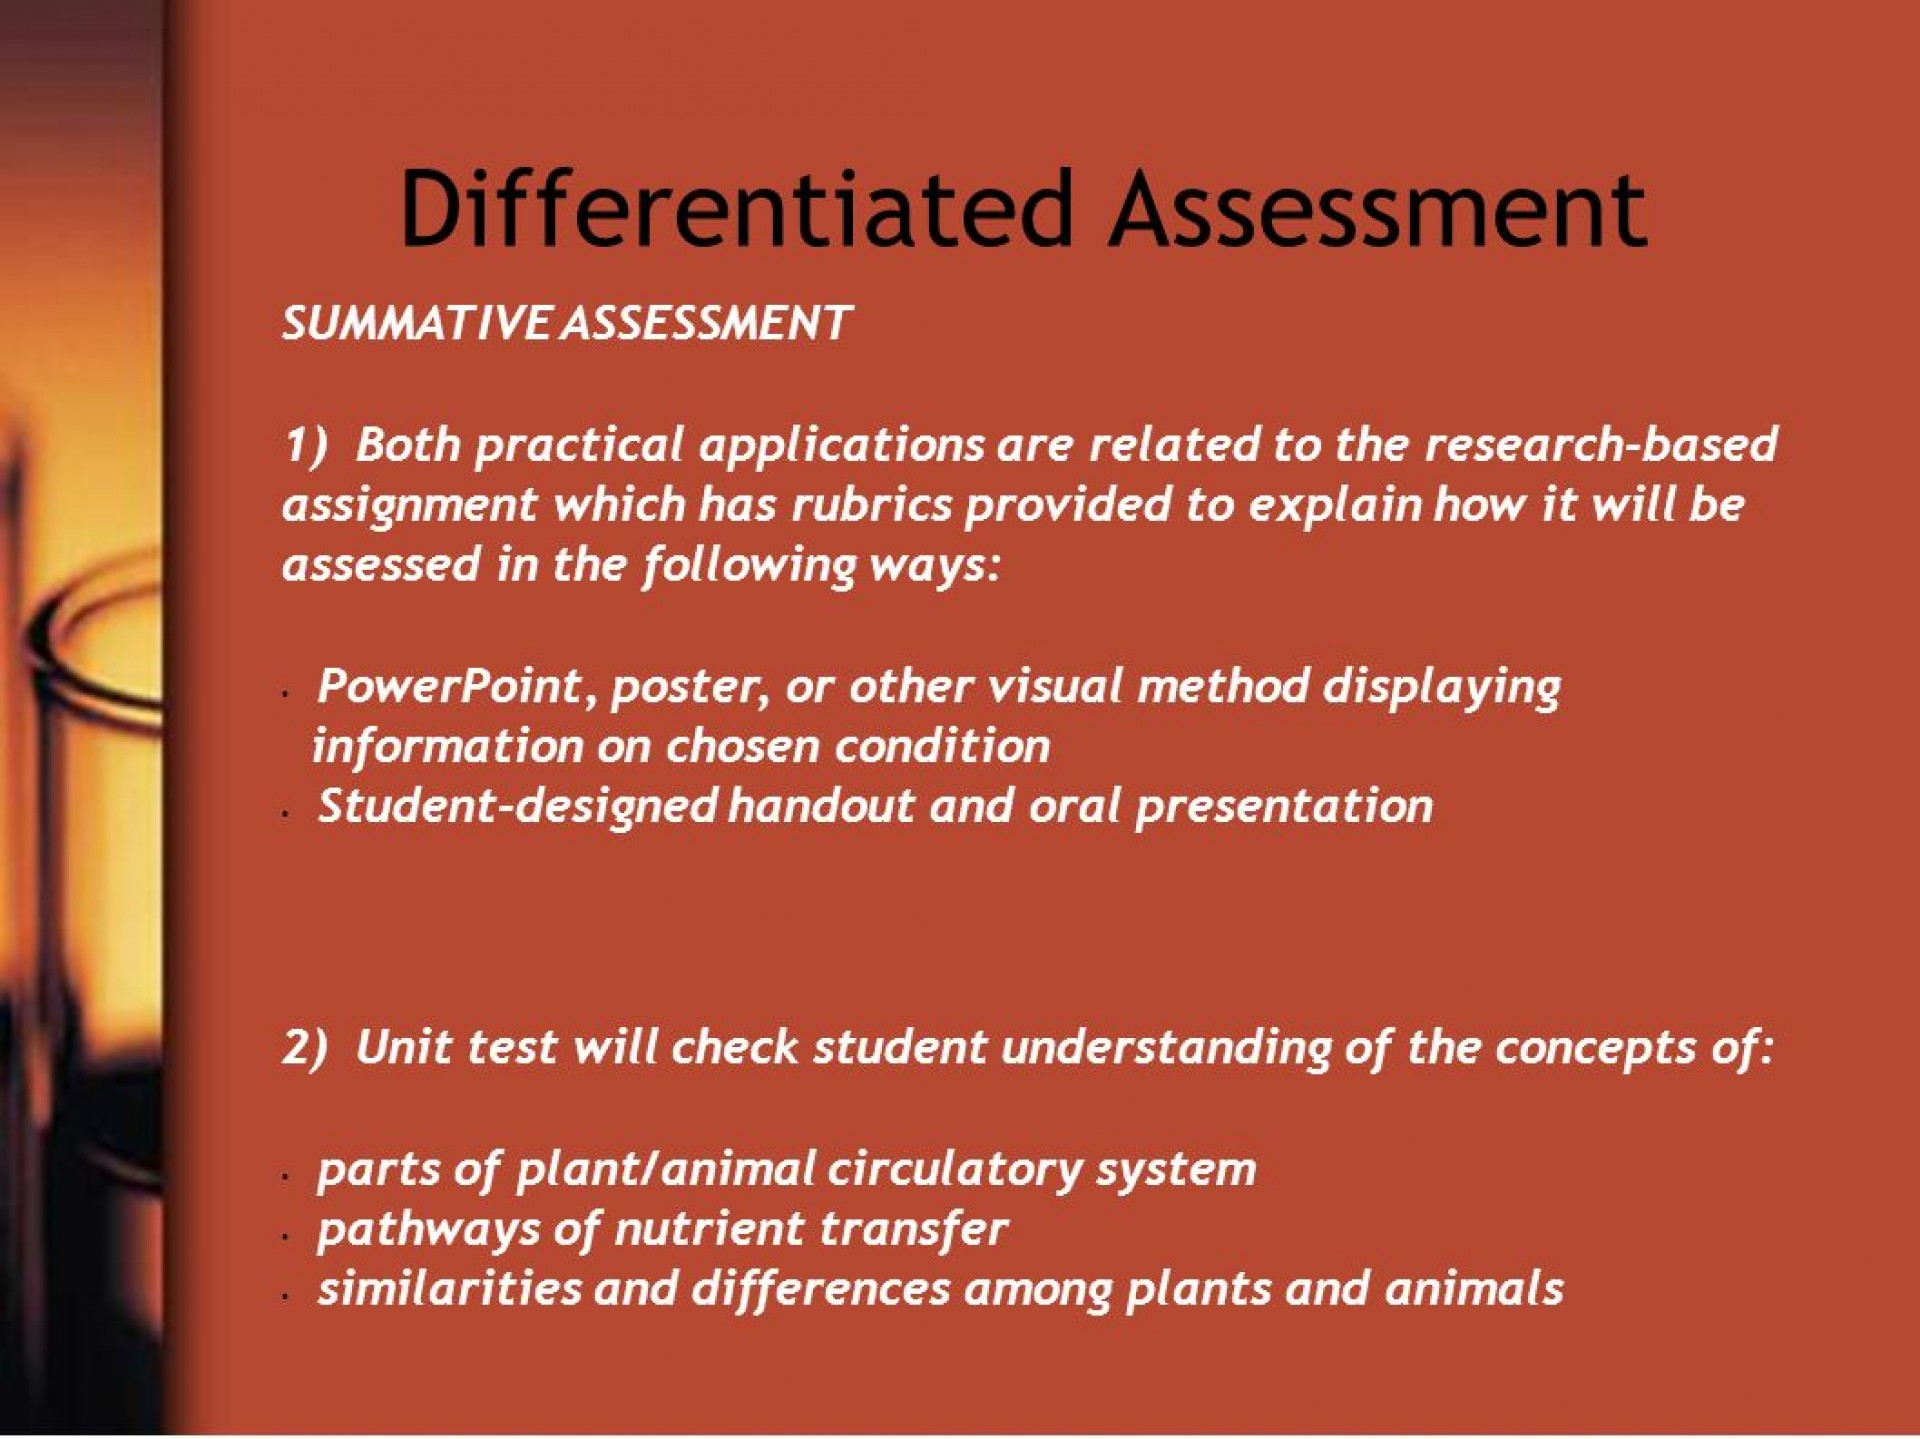 012 Research Paper Parts Of Ppt Slide 17 Best A Chapter 1 5 Qualitative 1920